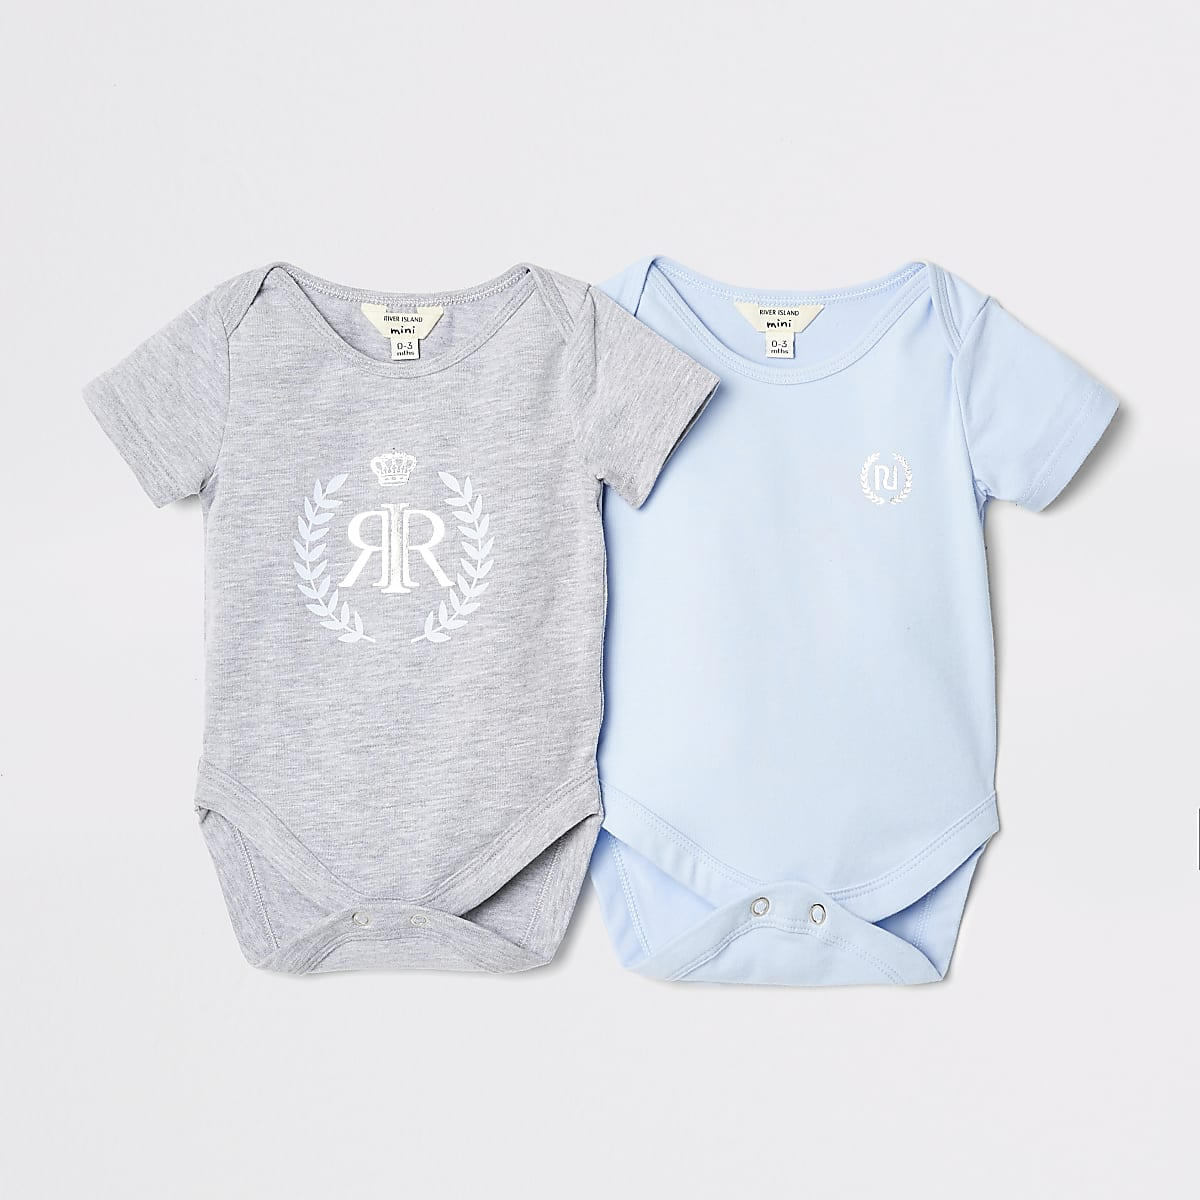 Baby blue baby grow two pack